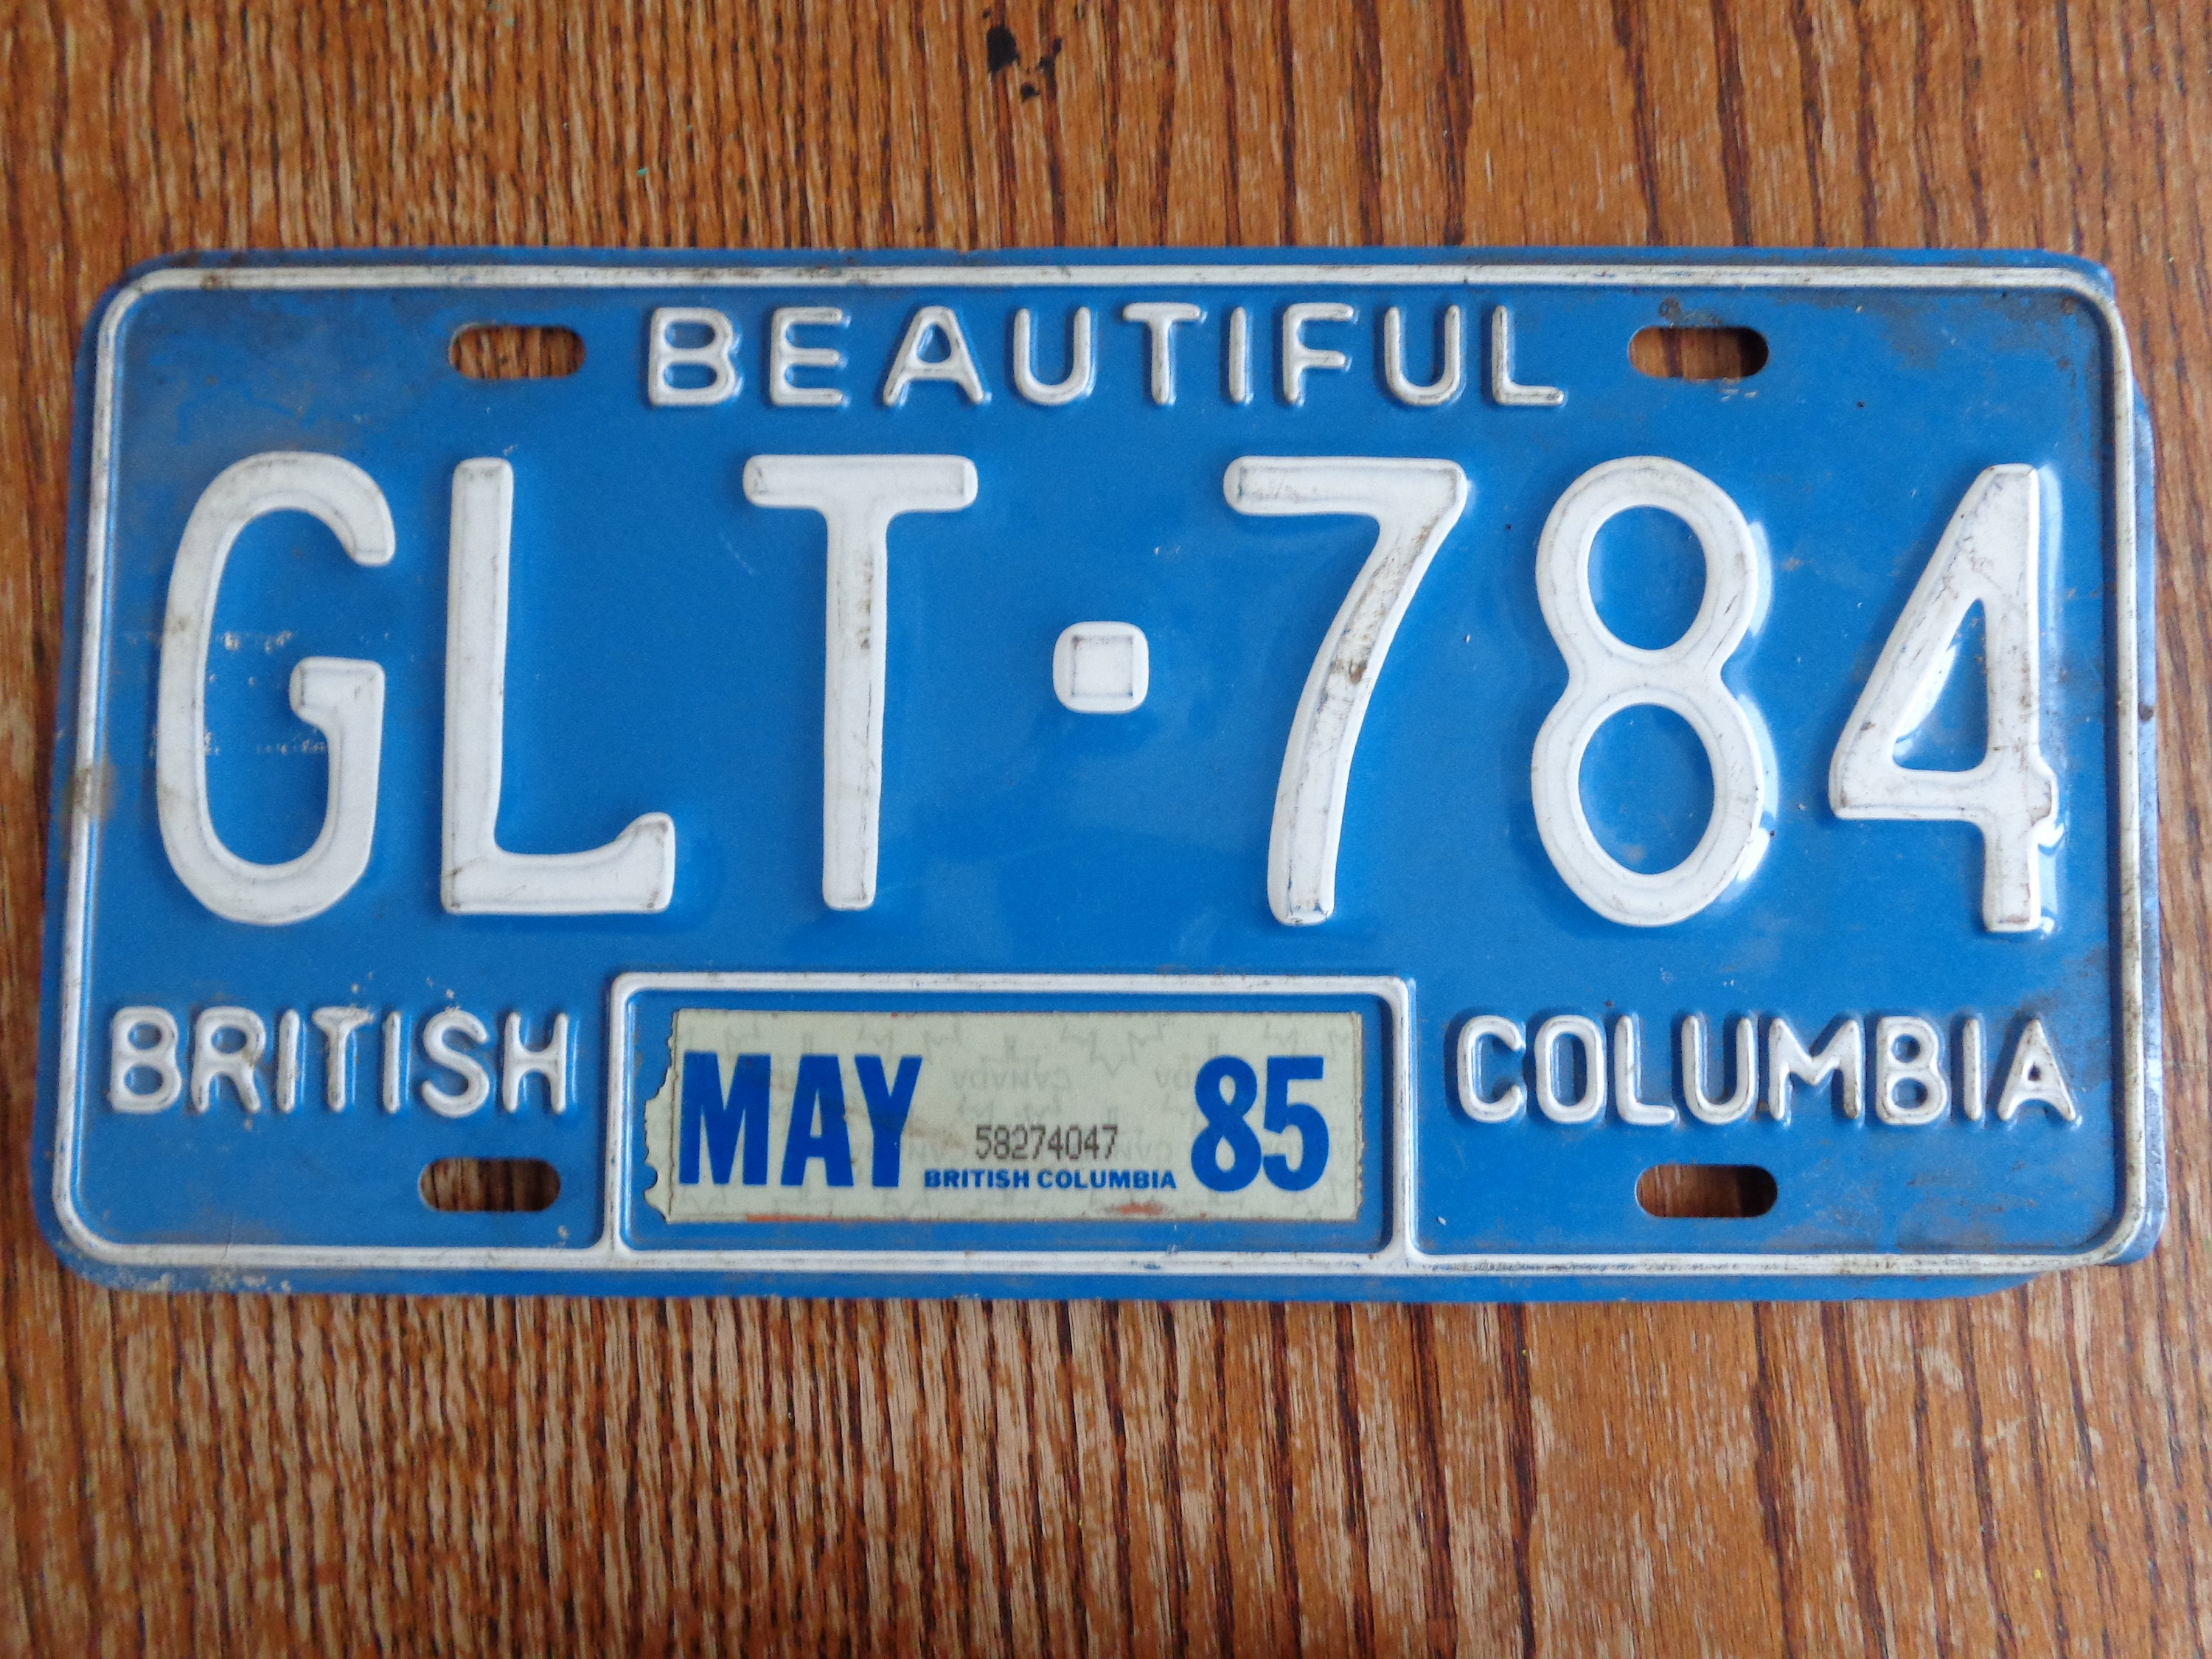 Vintage BC license plate Vintage License Plate Old License